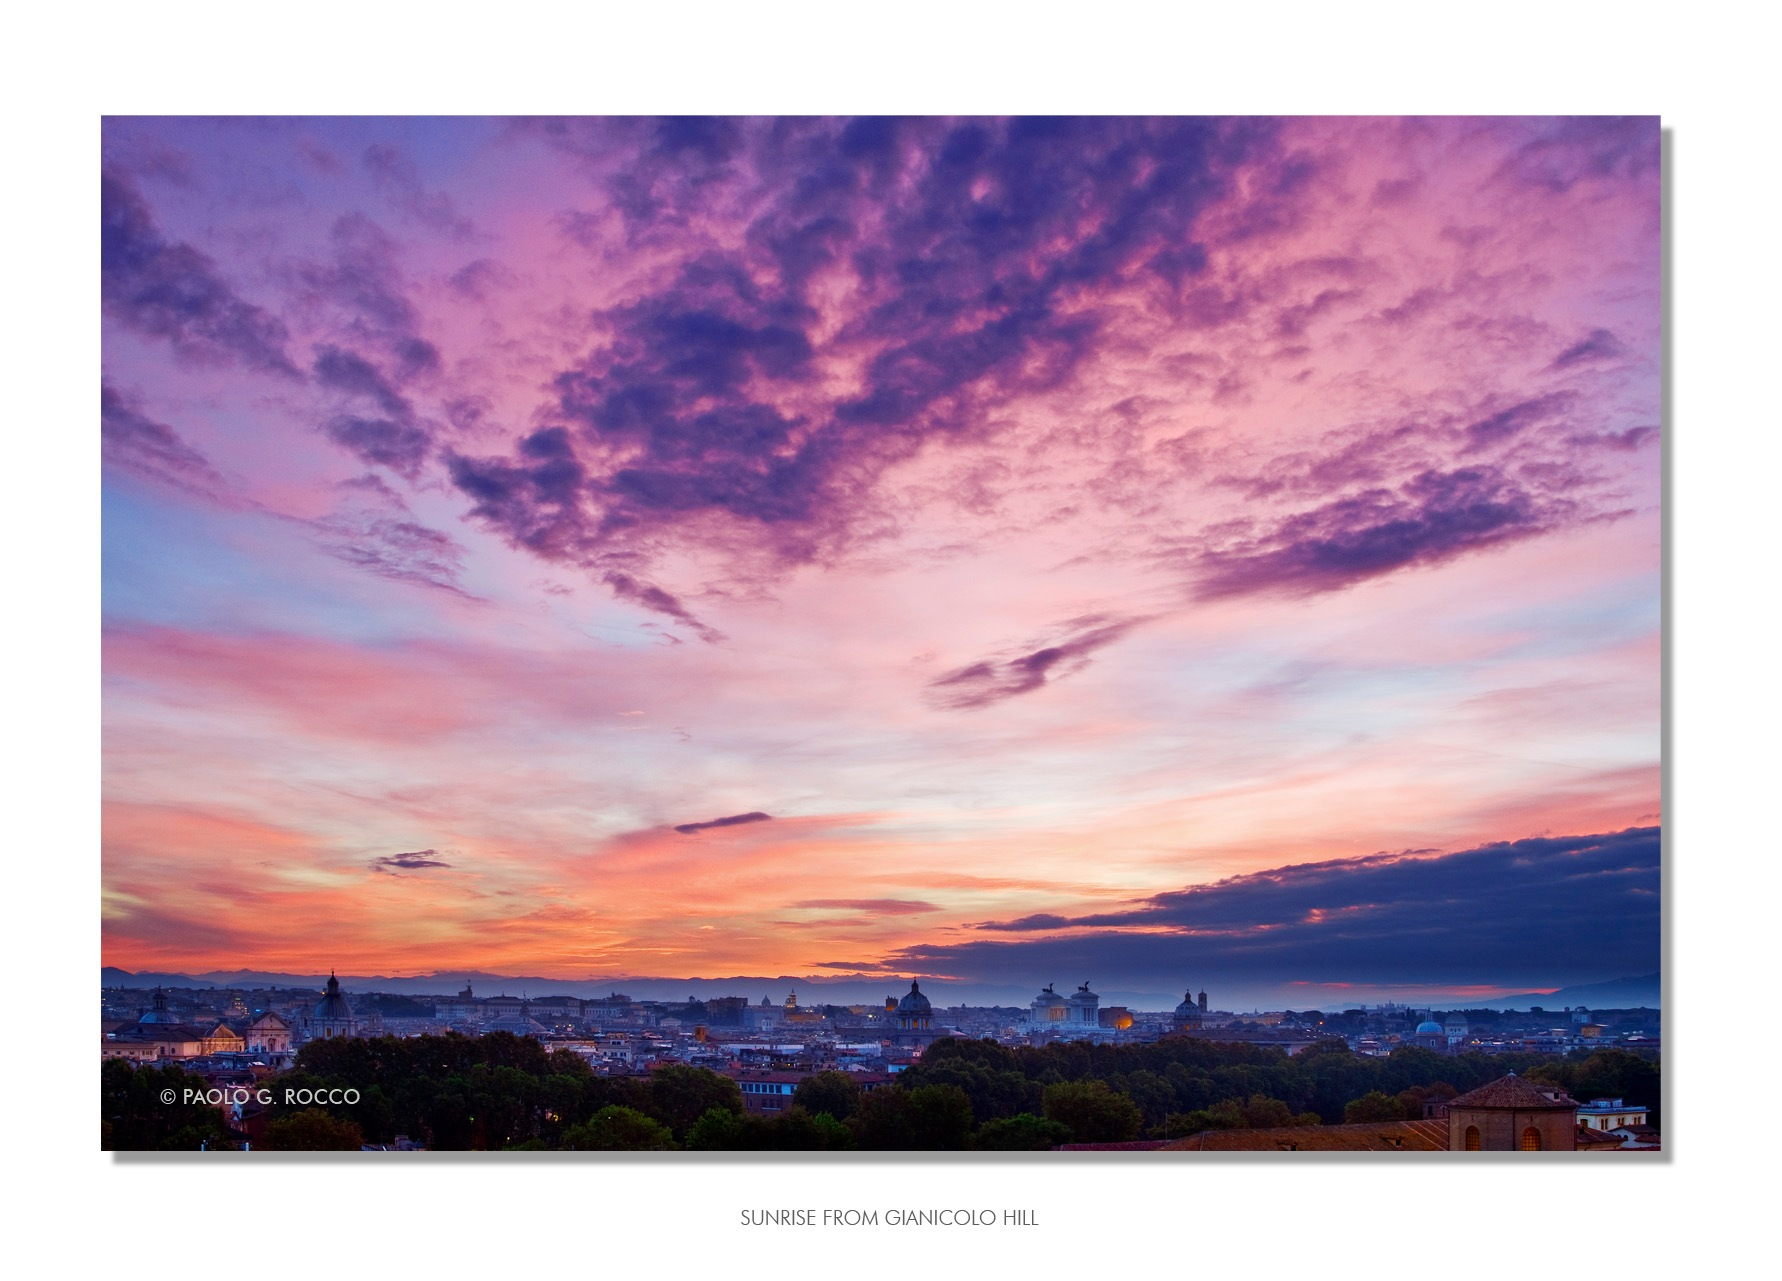 Sunrise over Rome by paologaetano